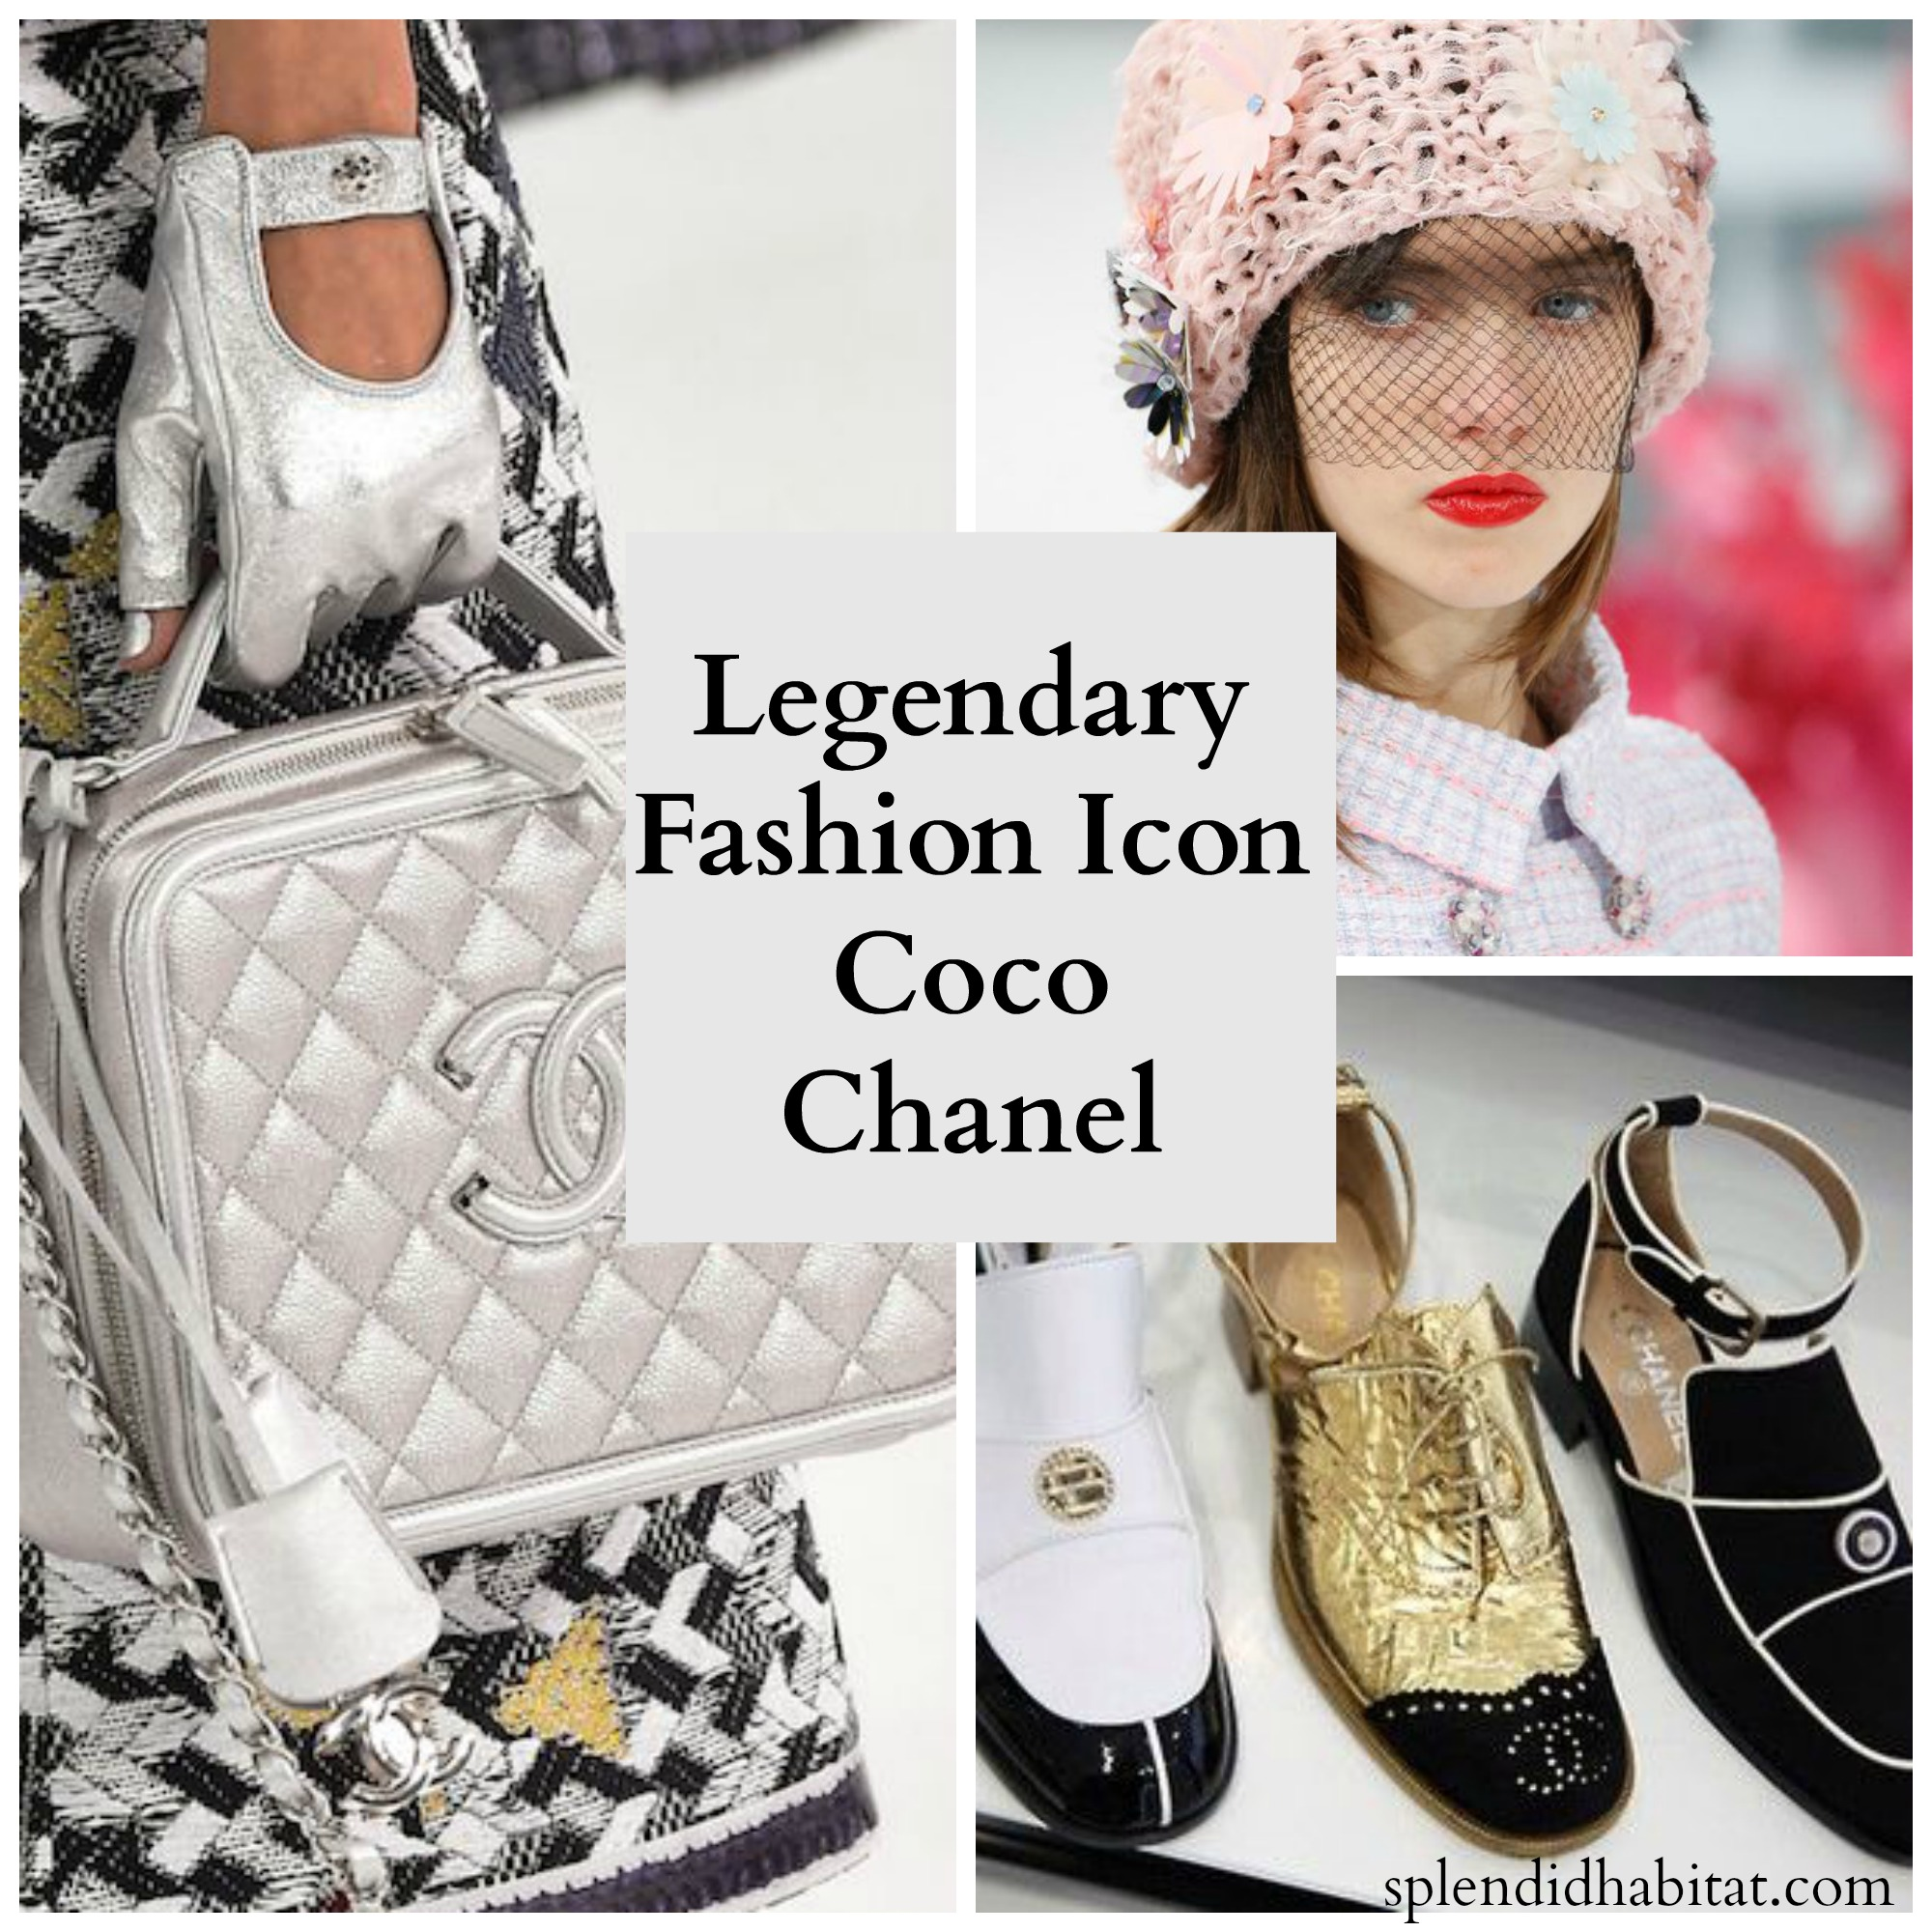 Icon style coco chanel forecasting to wear for on every day in 2019